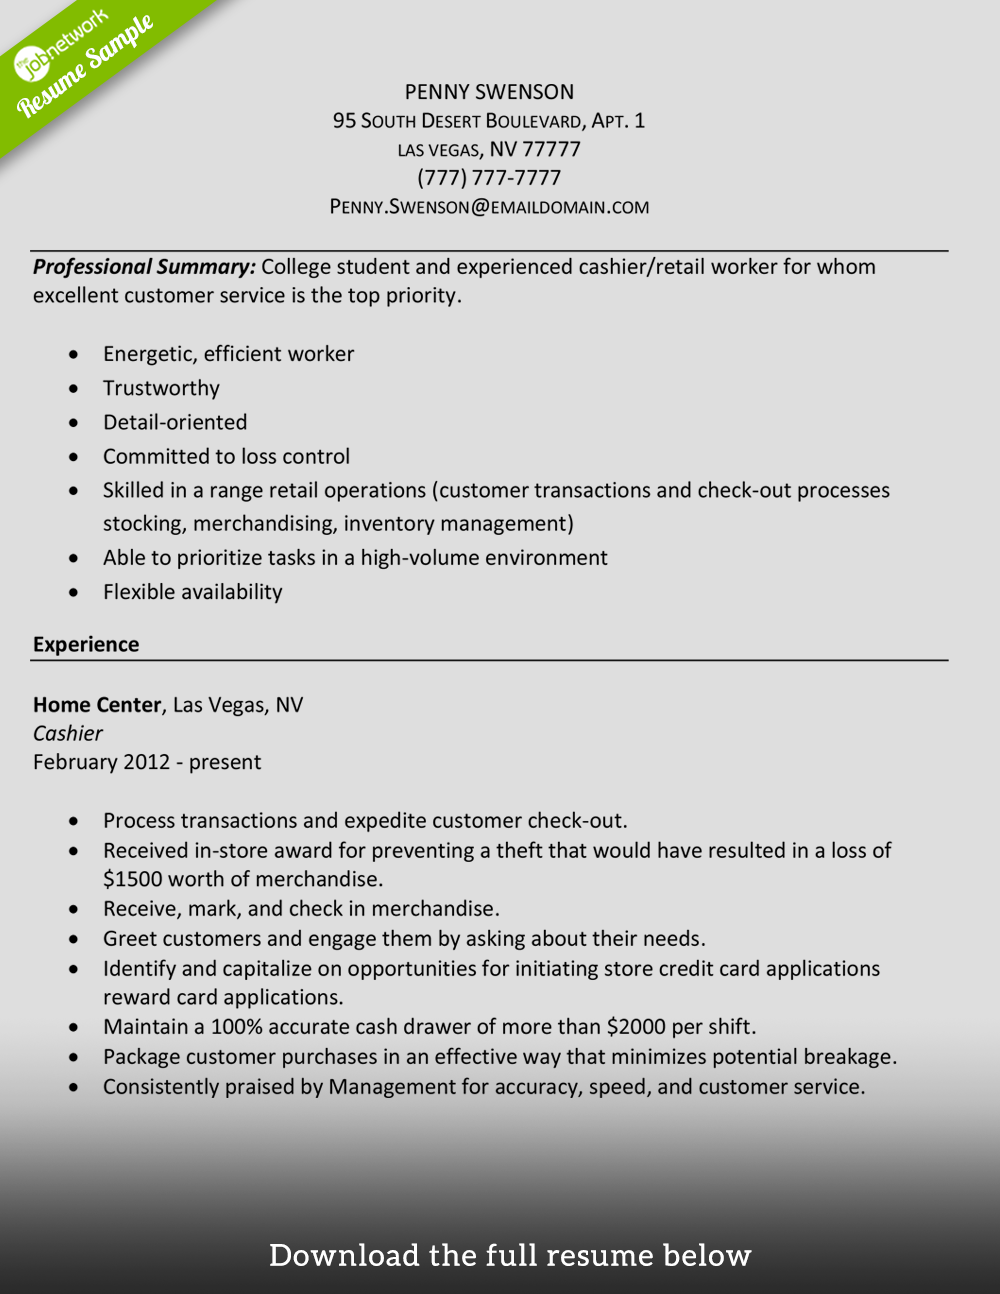 cashier resume experienced in retail - Example Resume For Cashier